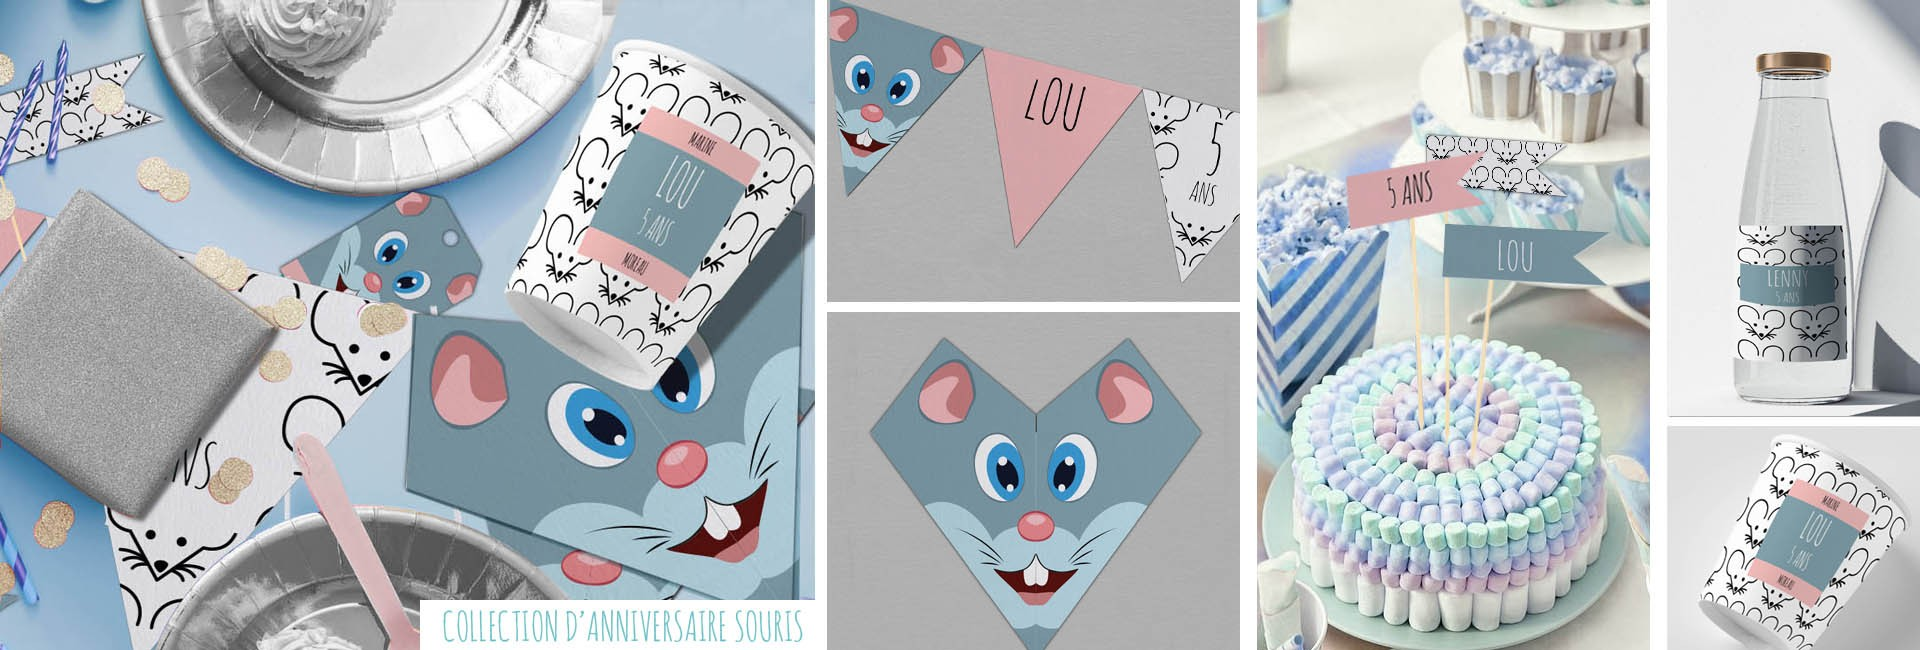 Carte d'anniversaire Collection Souris